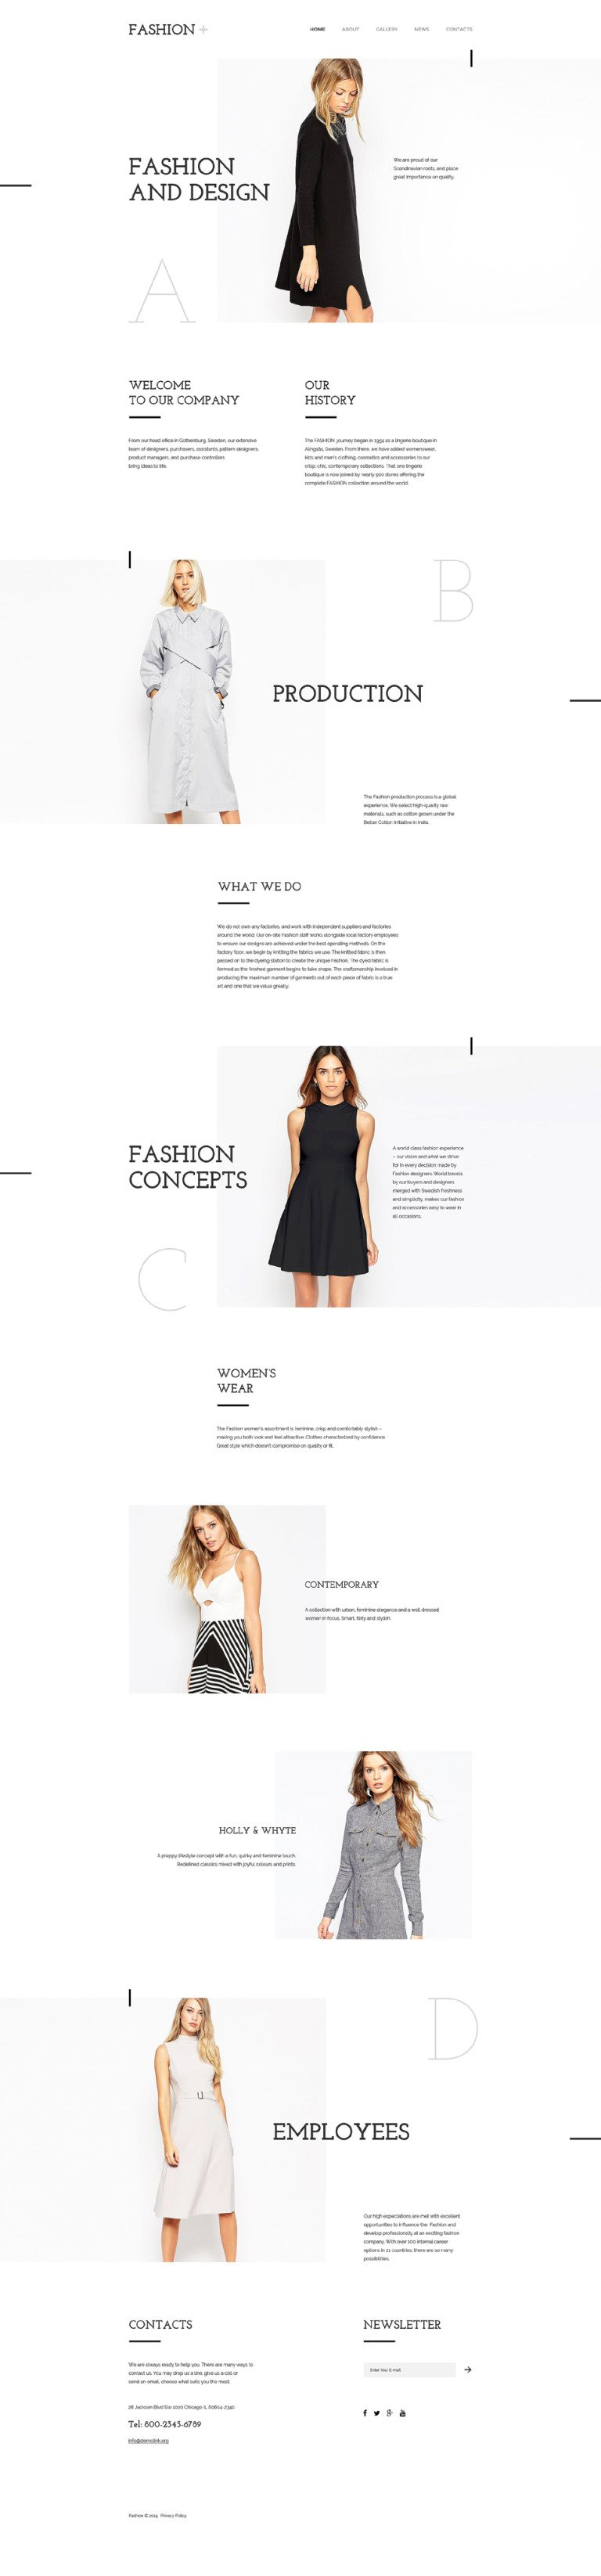 Fashion Website Template New Screenshots BIG